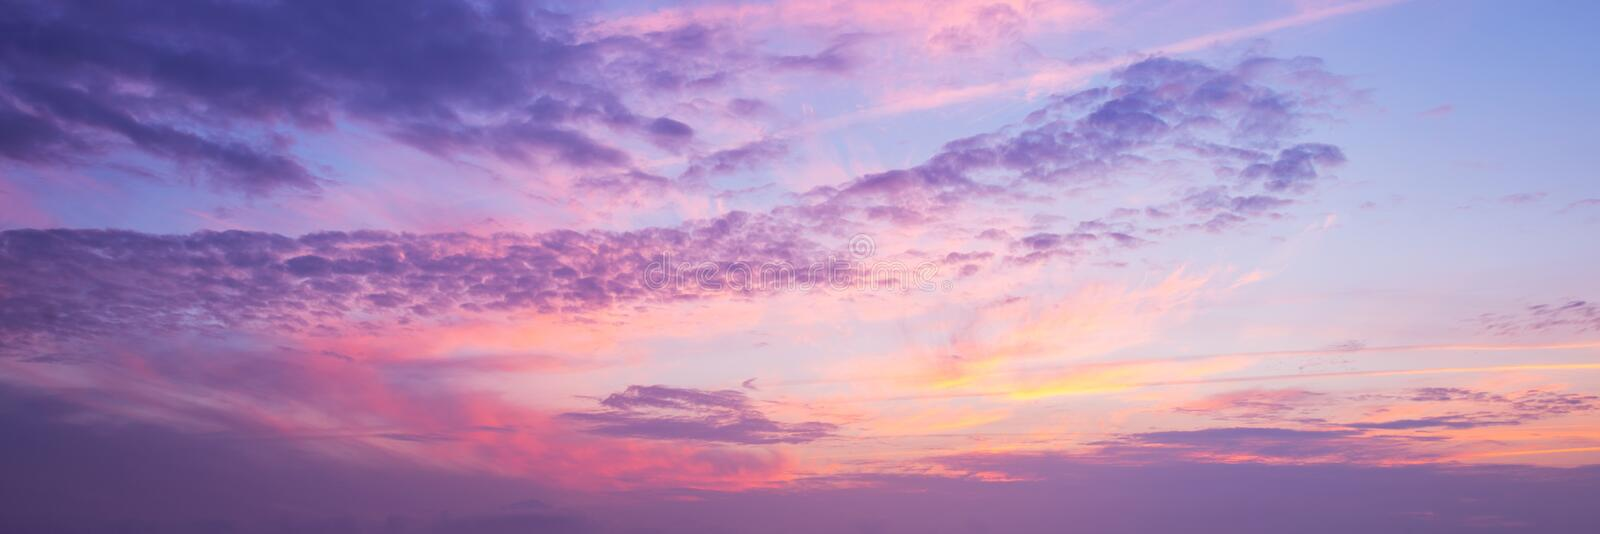 Panoramic view of pink and purple sky at sunset. Panoramic view of a pink and purple sky at sunset royalty free stock photo